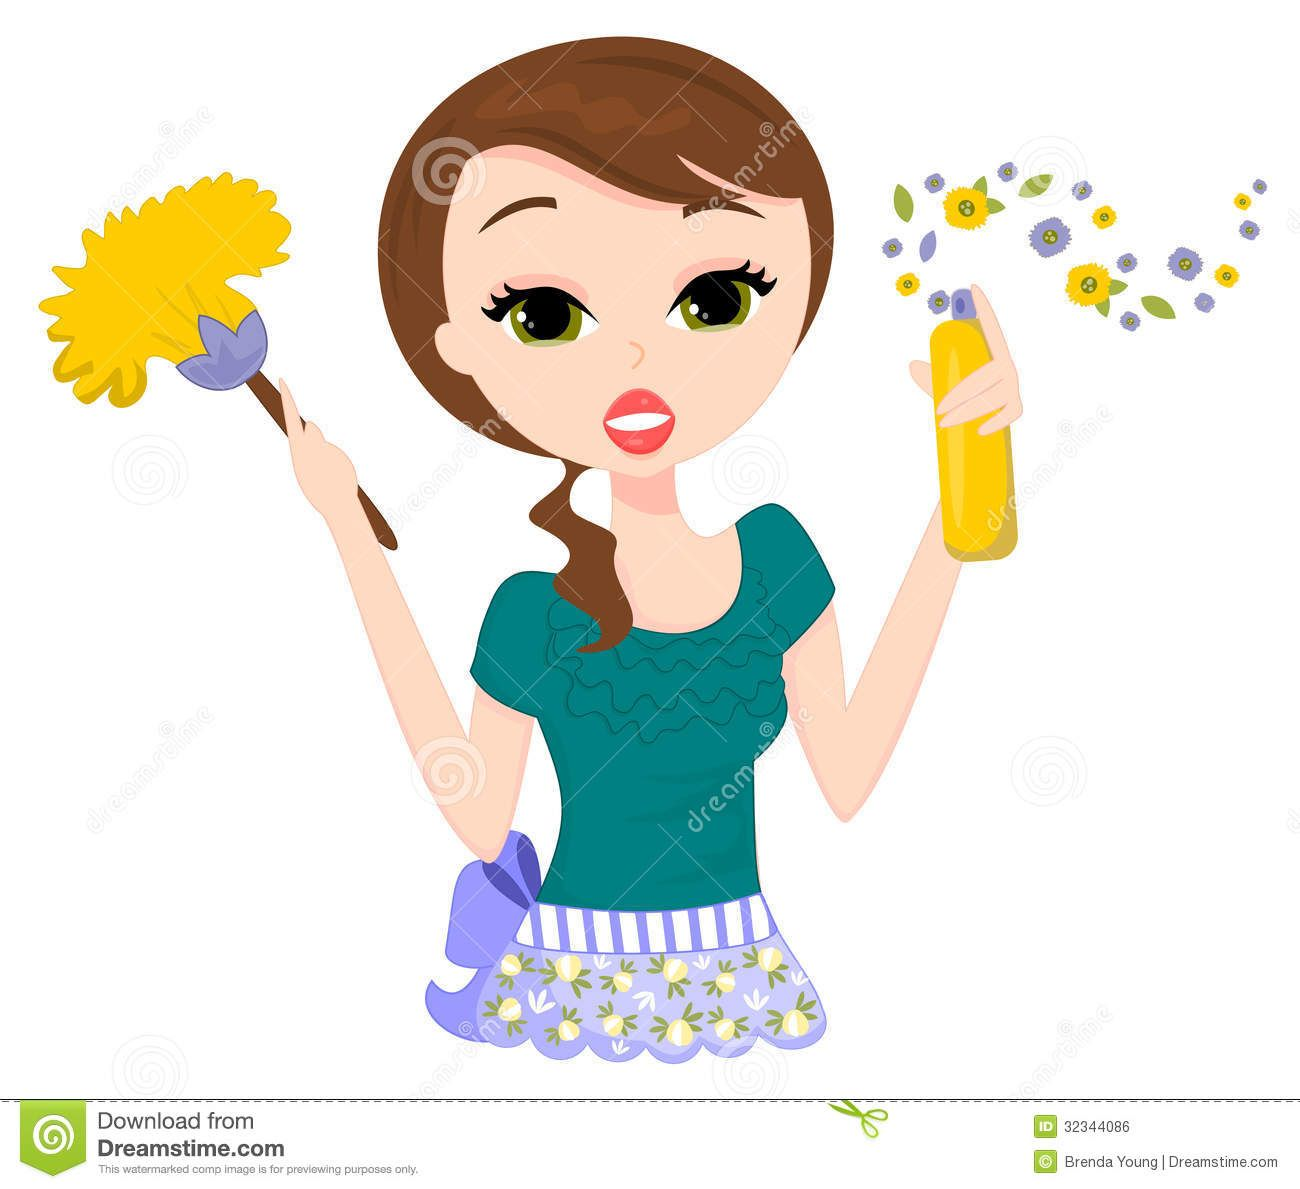 cleaning business clip art printable house cleaning flyers cleaning lady from over 53 million high quality stock photos images vectors sign up for today image 32344086